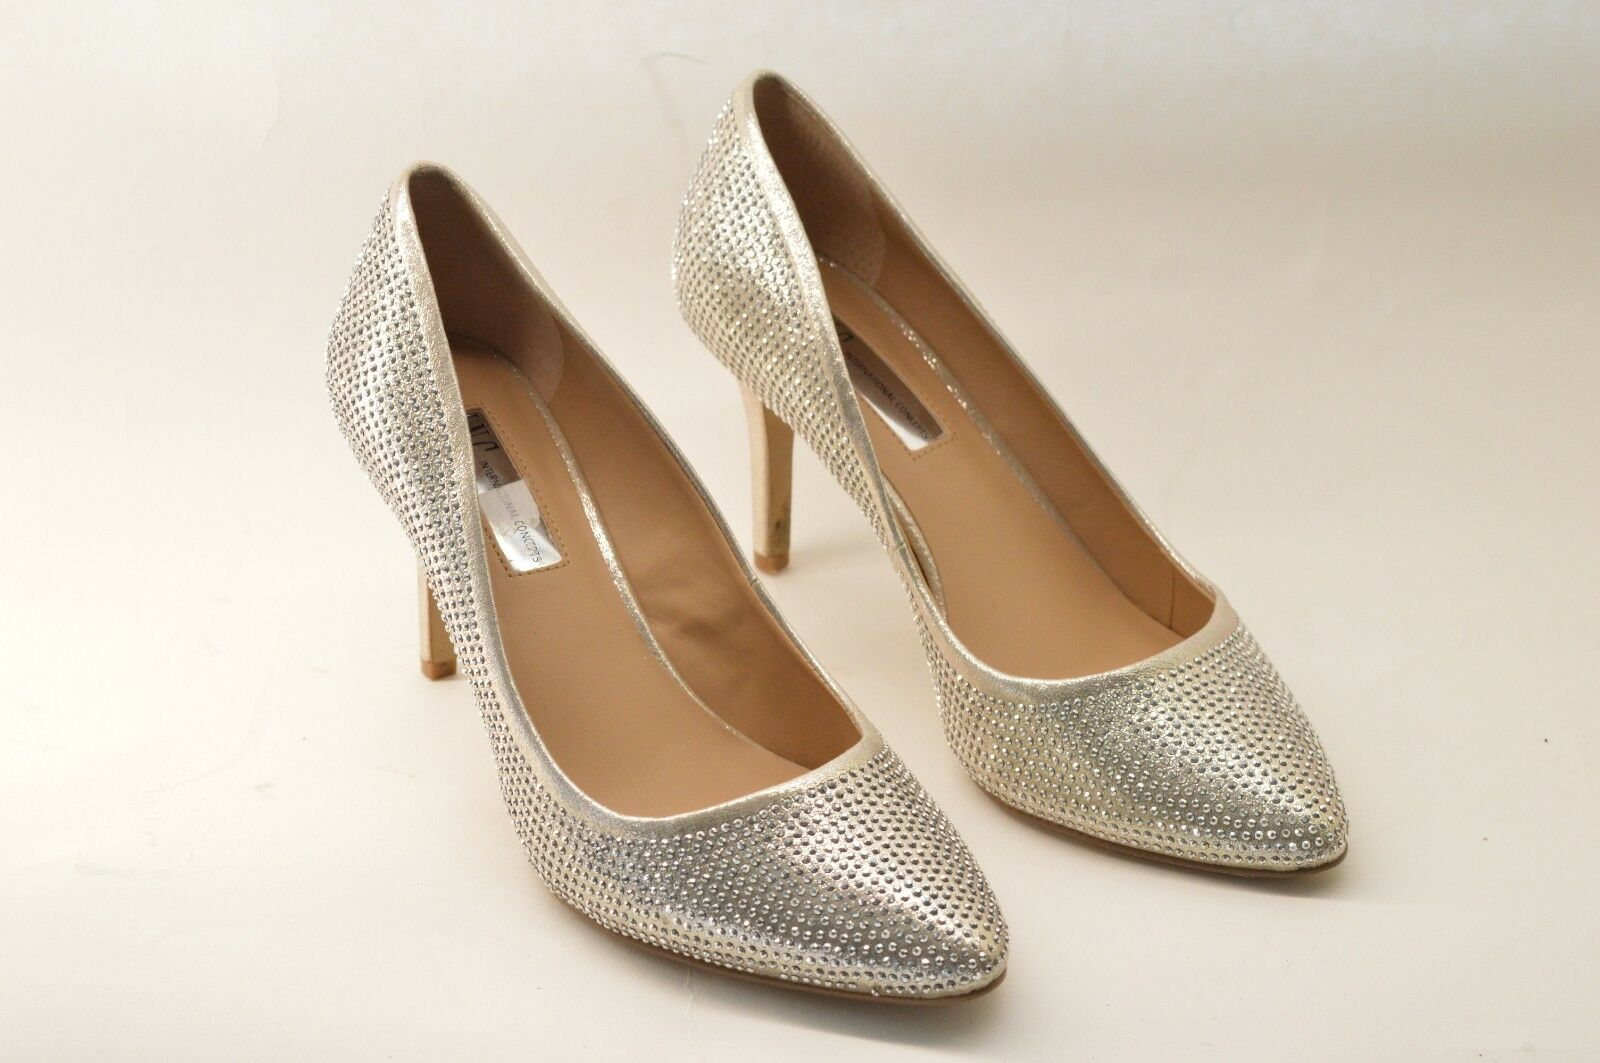 International Concepts I.N.C ZITAH3gold Pearl gold Pumps, Women's shoes, Size 8